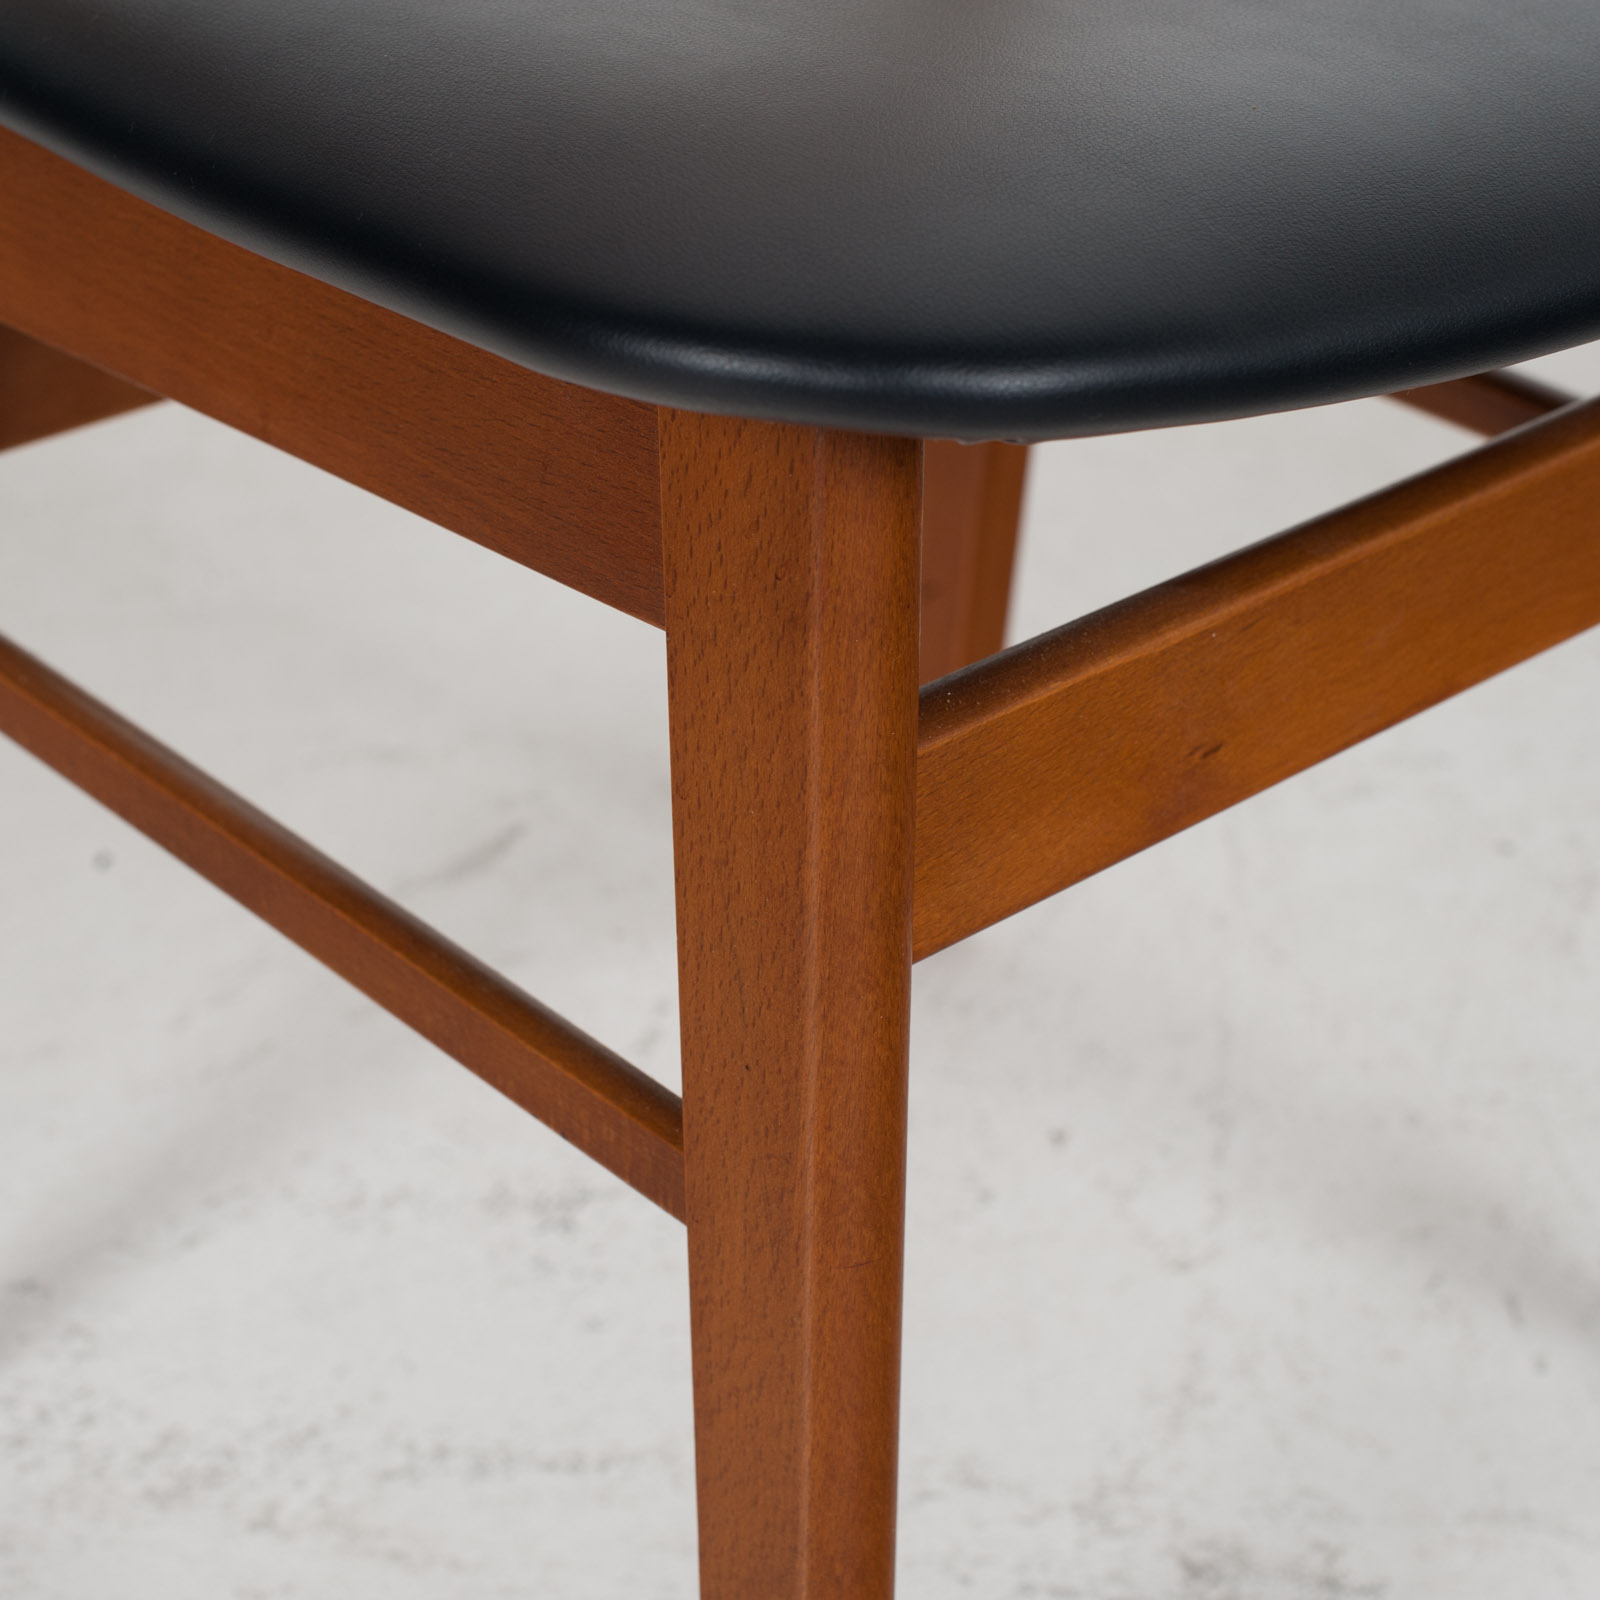 V Back Dining Chairs By Farstrup With Buttons In Teak And